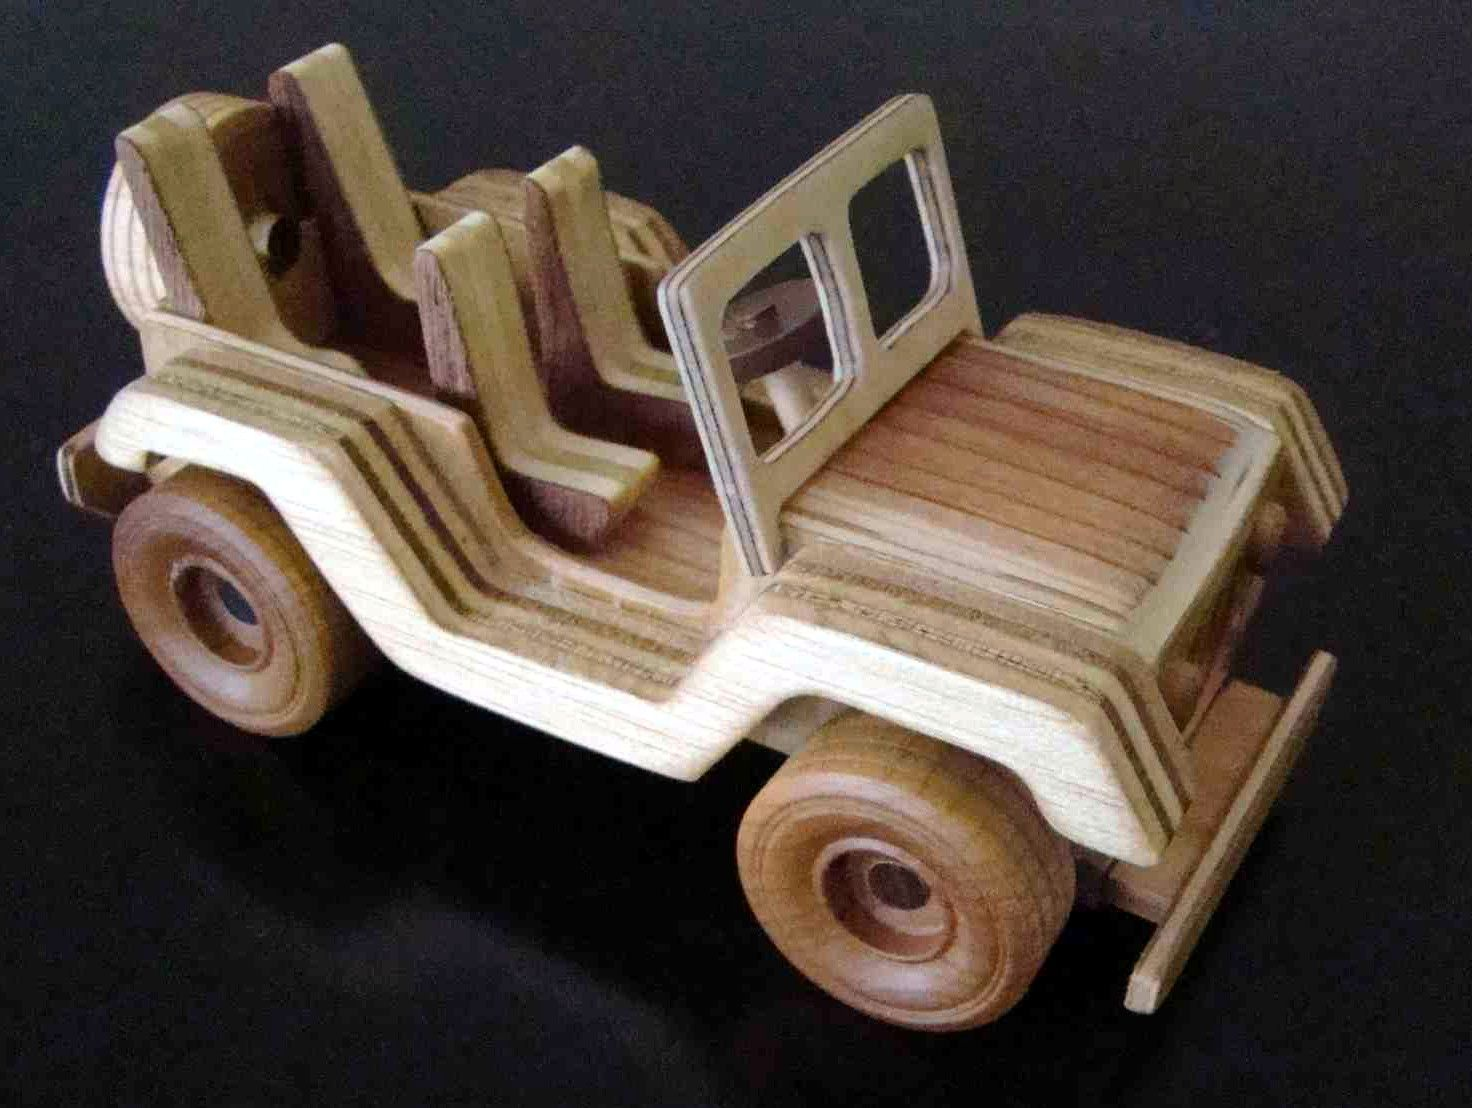 jeep | wooden toys | wooden toys, wood toys, wooden toy cars